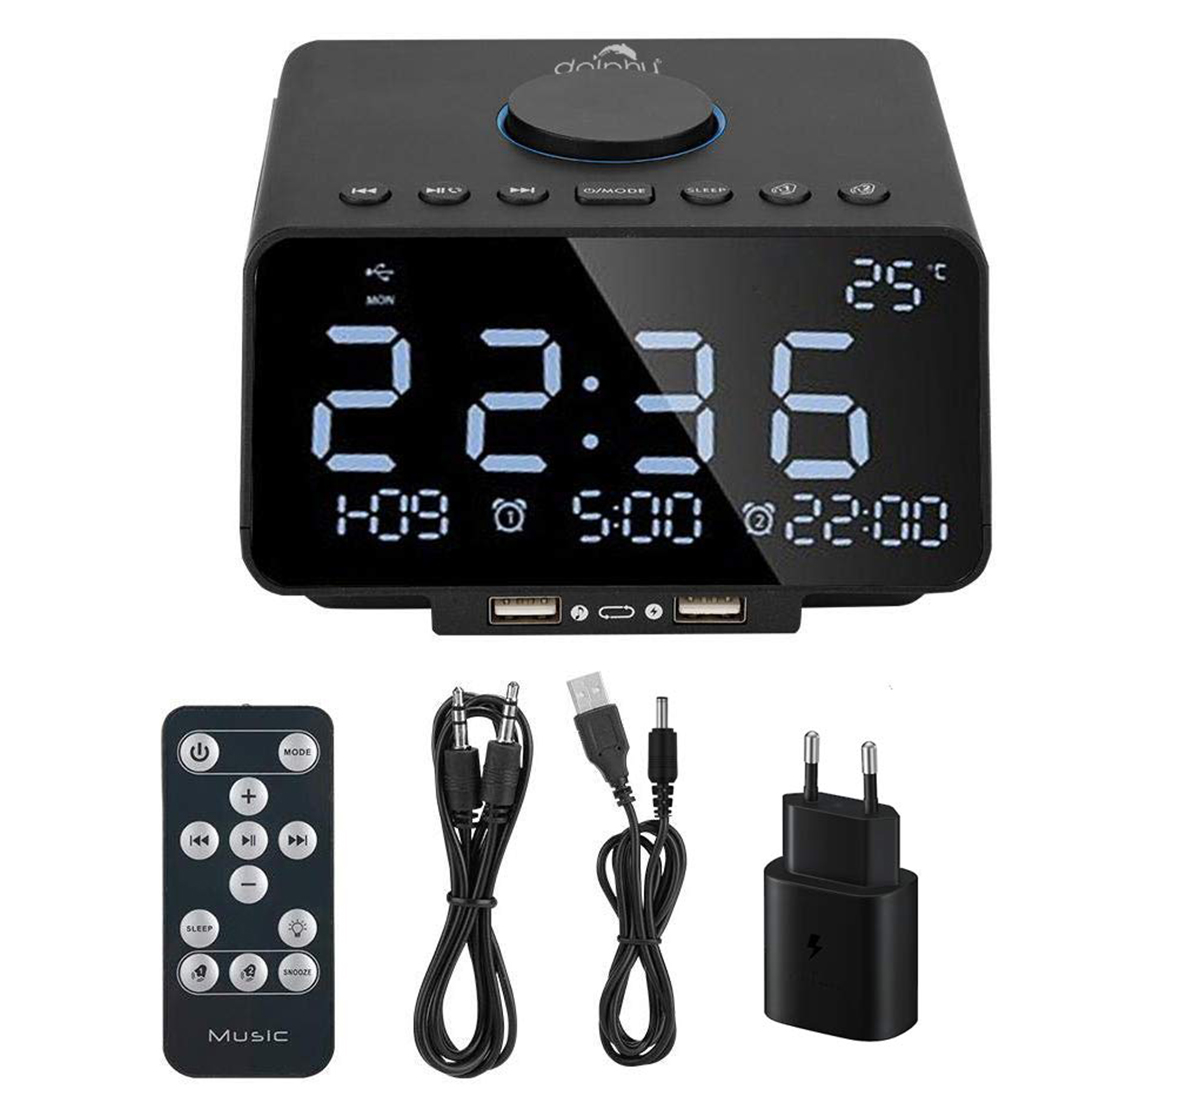 Dock Station Dual Alarm Clock, FM Radio, LED Display, Wireless Bluetooth Player